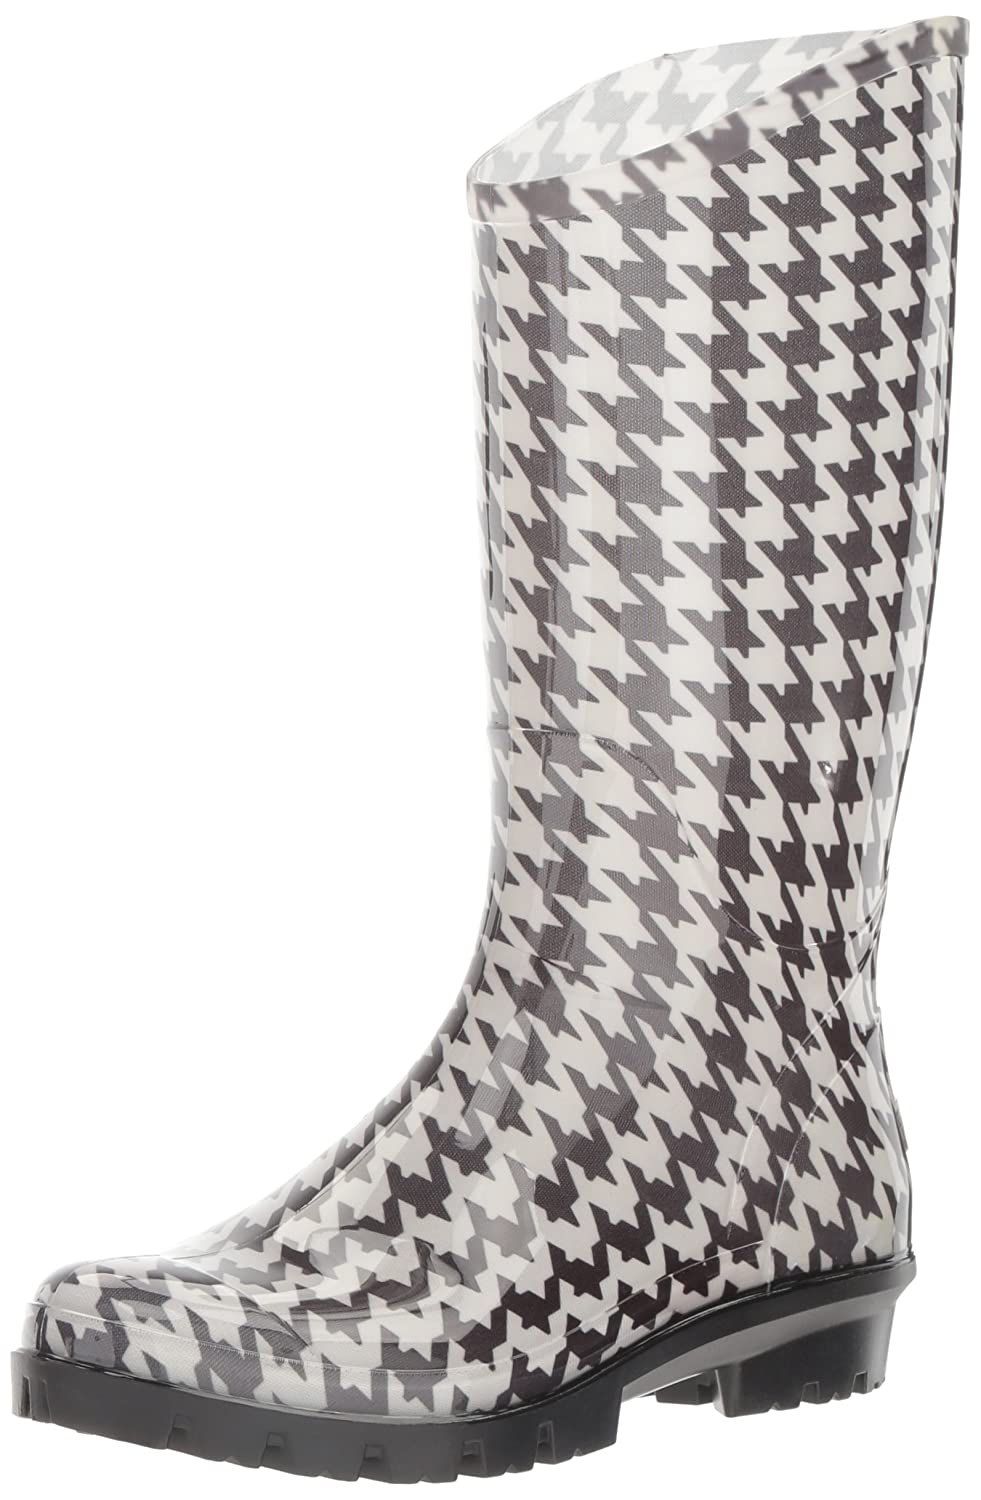 Columbia Women's Rainey Tall Rain Boot B01HFHYKGK 9 B(M) US|Cool Grey/Wild Salmon